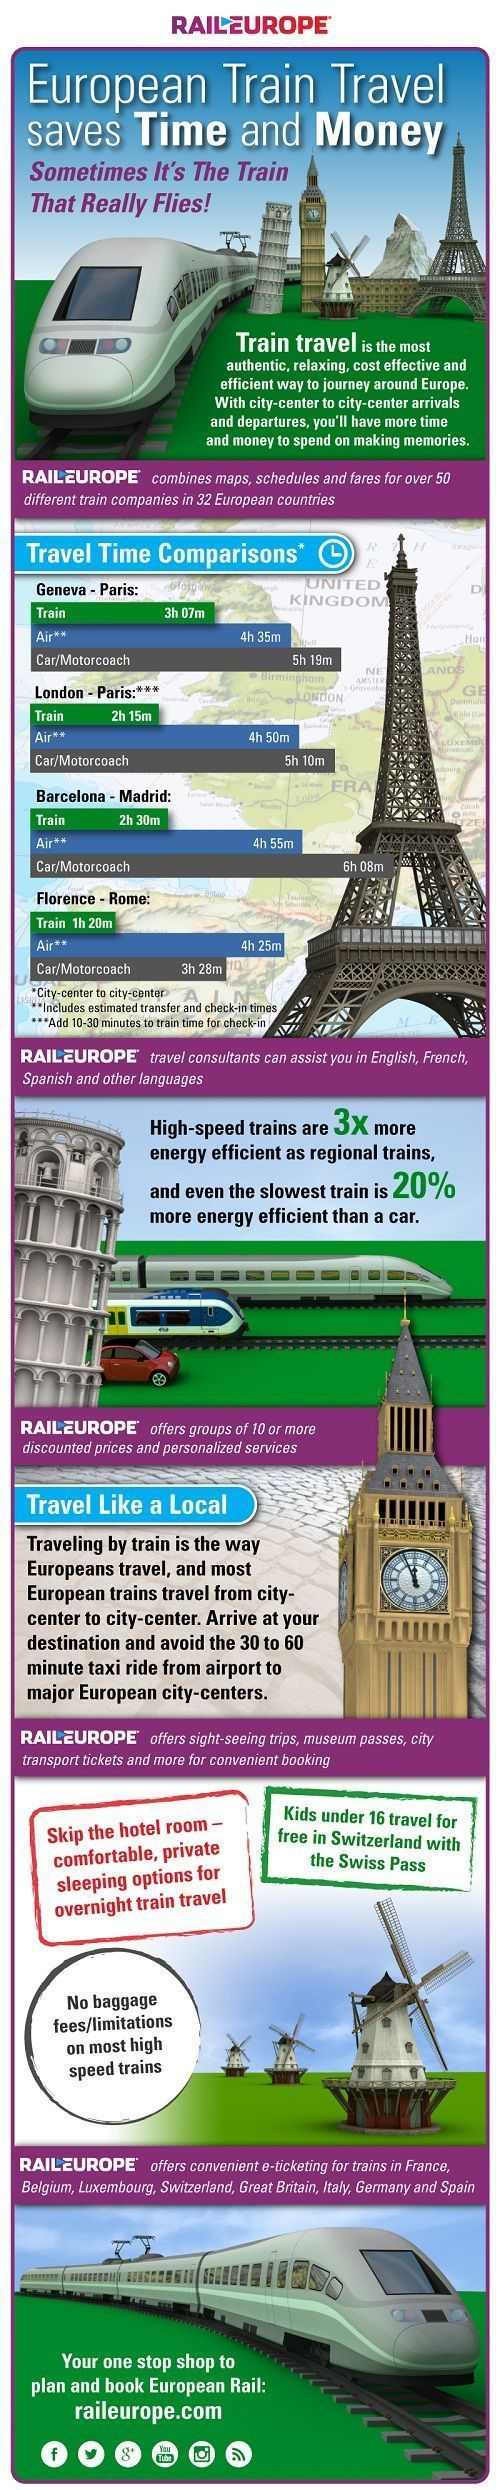 Train travel is the best way to see Europe! You can book tickets, rail passes, sightseeing activities and more with #RailEurope at www.raileurope.com